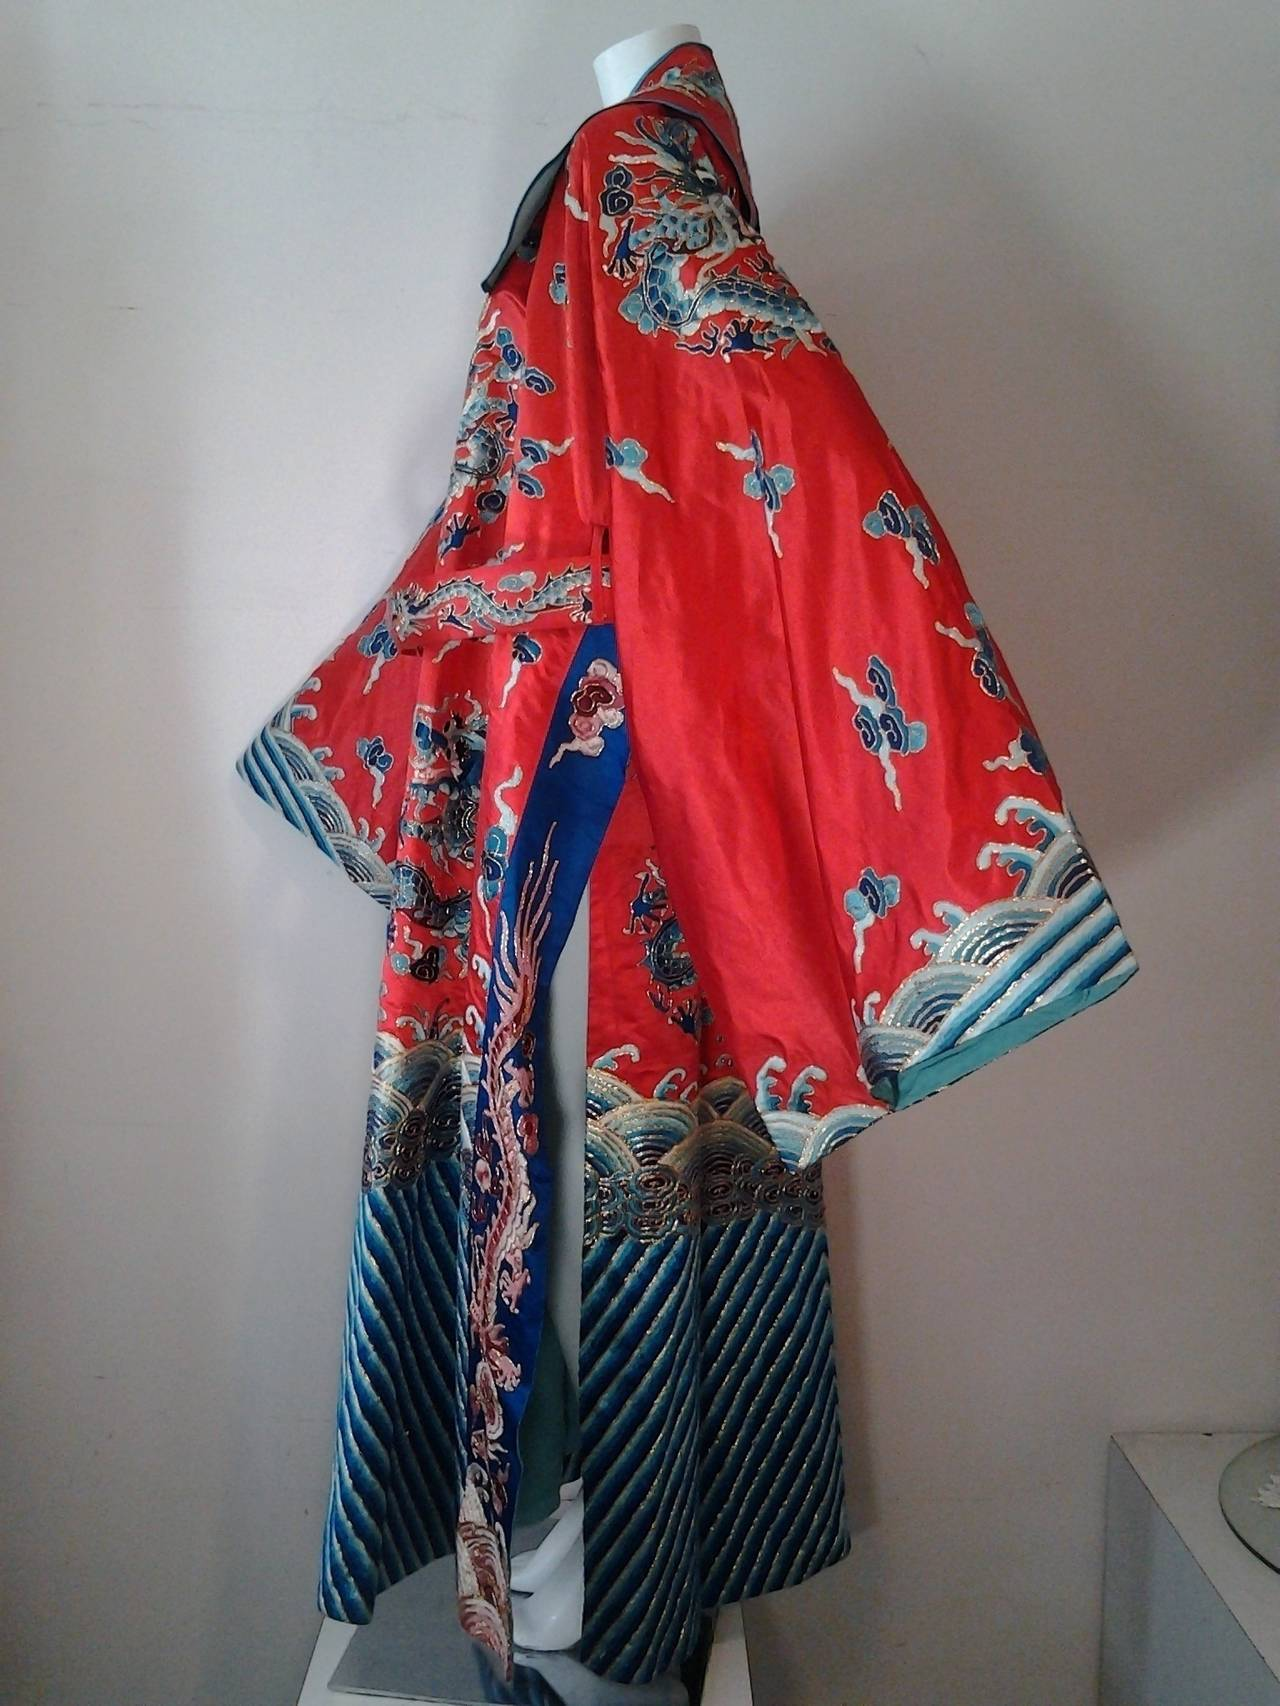 1940s Chinese Red Dragon Robe 3 Pieces 7